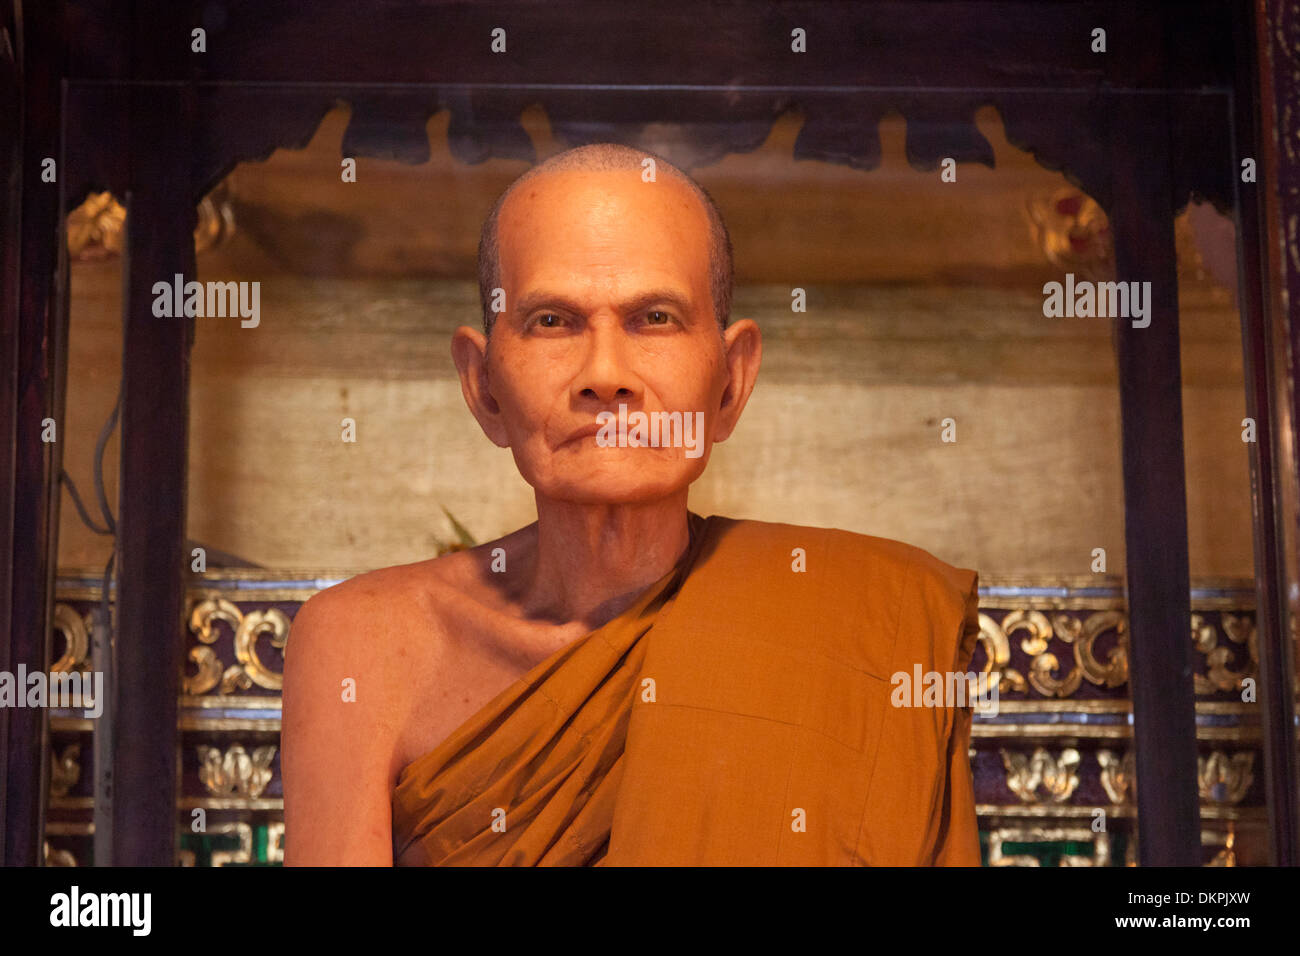 The waxwork dummy of an ex-abbot in the Chedi Luang temple (Chiang Mai - Thailand). Statue en cire d'un ancien moine supérieur. - Stock Image